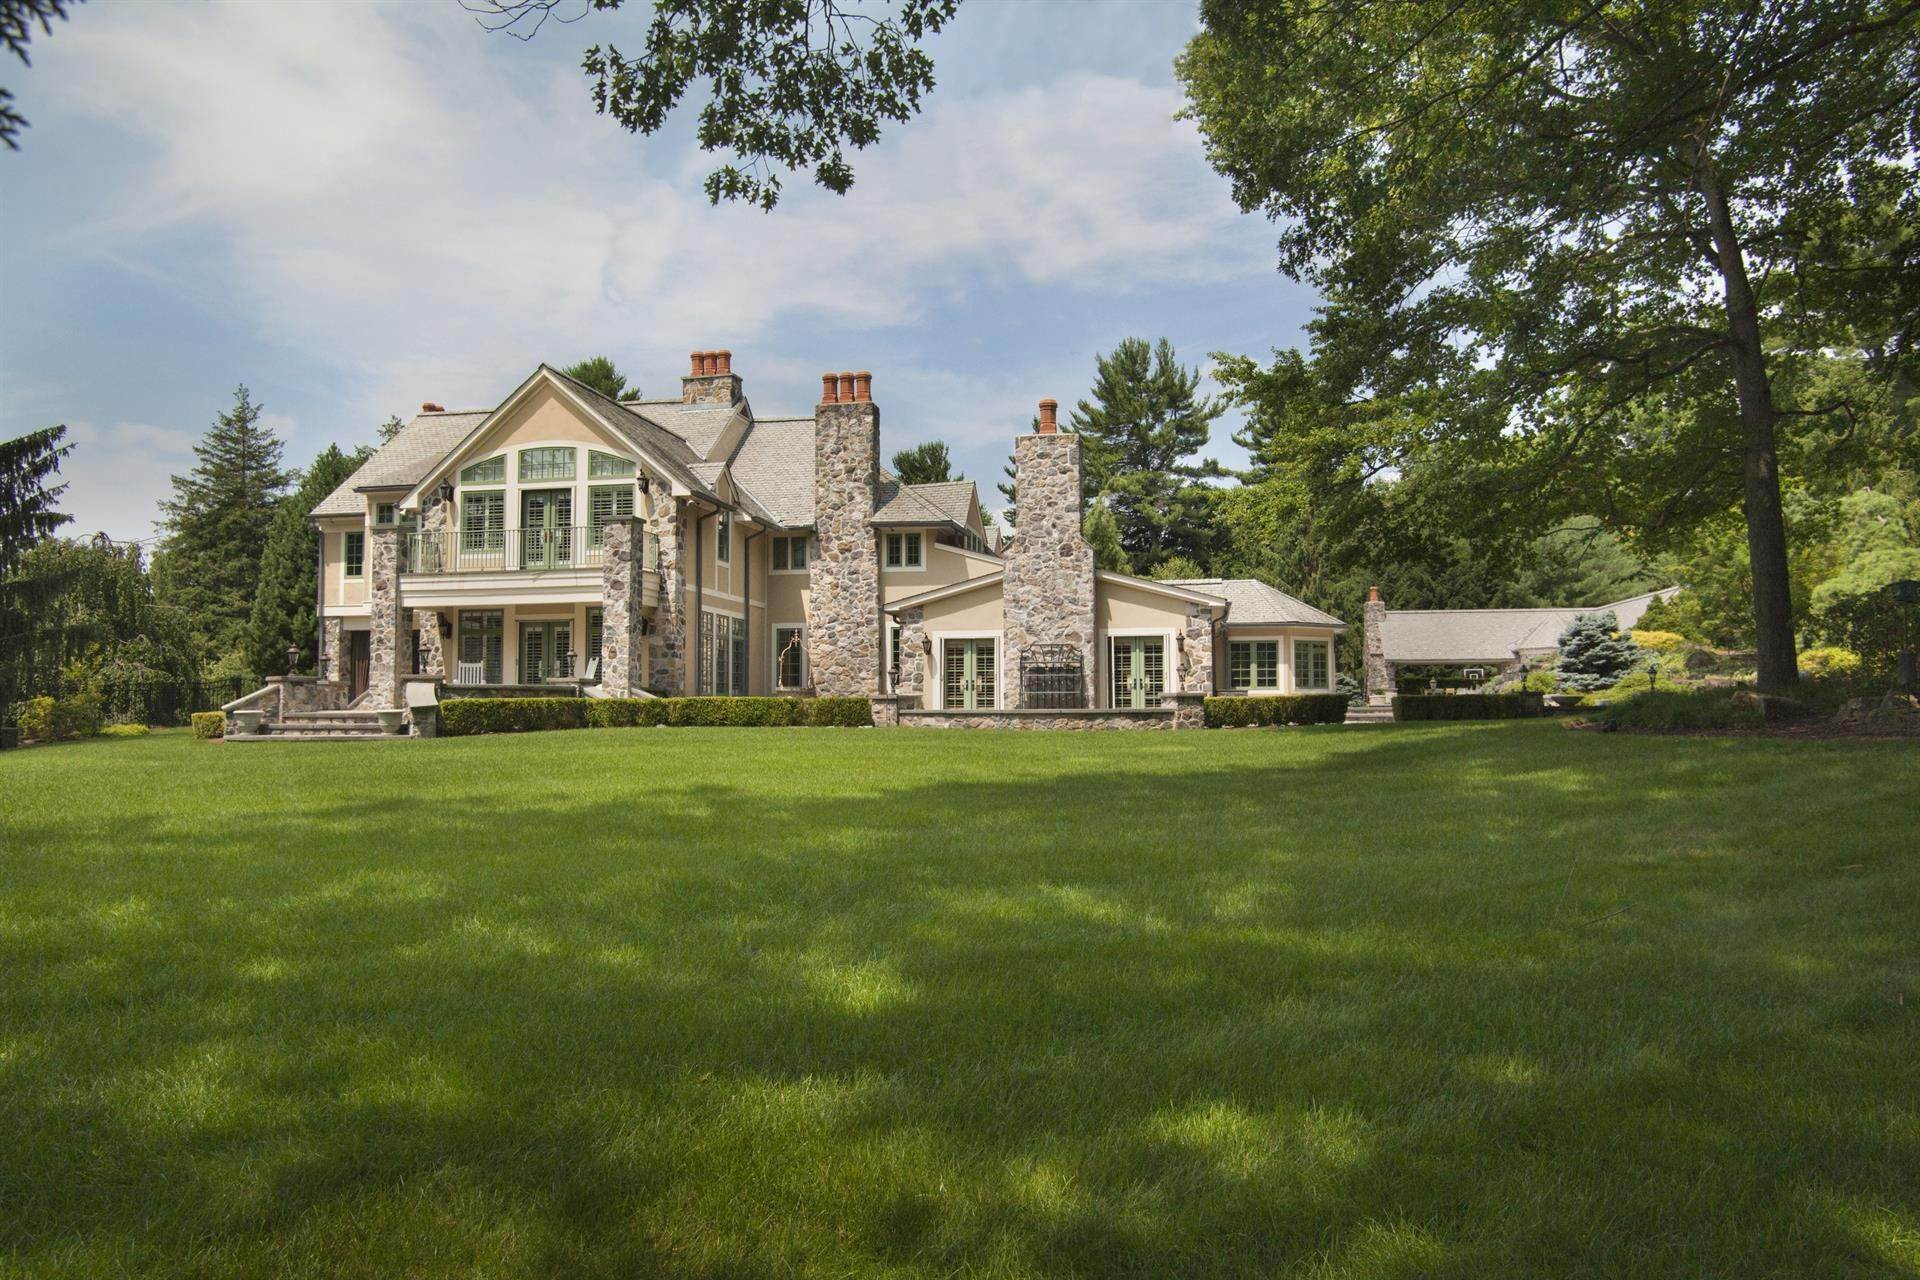 Single Family Home vì Bán tại Celebrity Stunner - 5+ Acre Family Compound Saddle River, New Jersey,07458 Hoa Kỳ